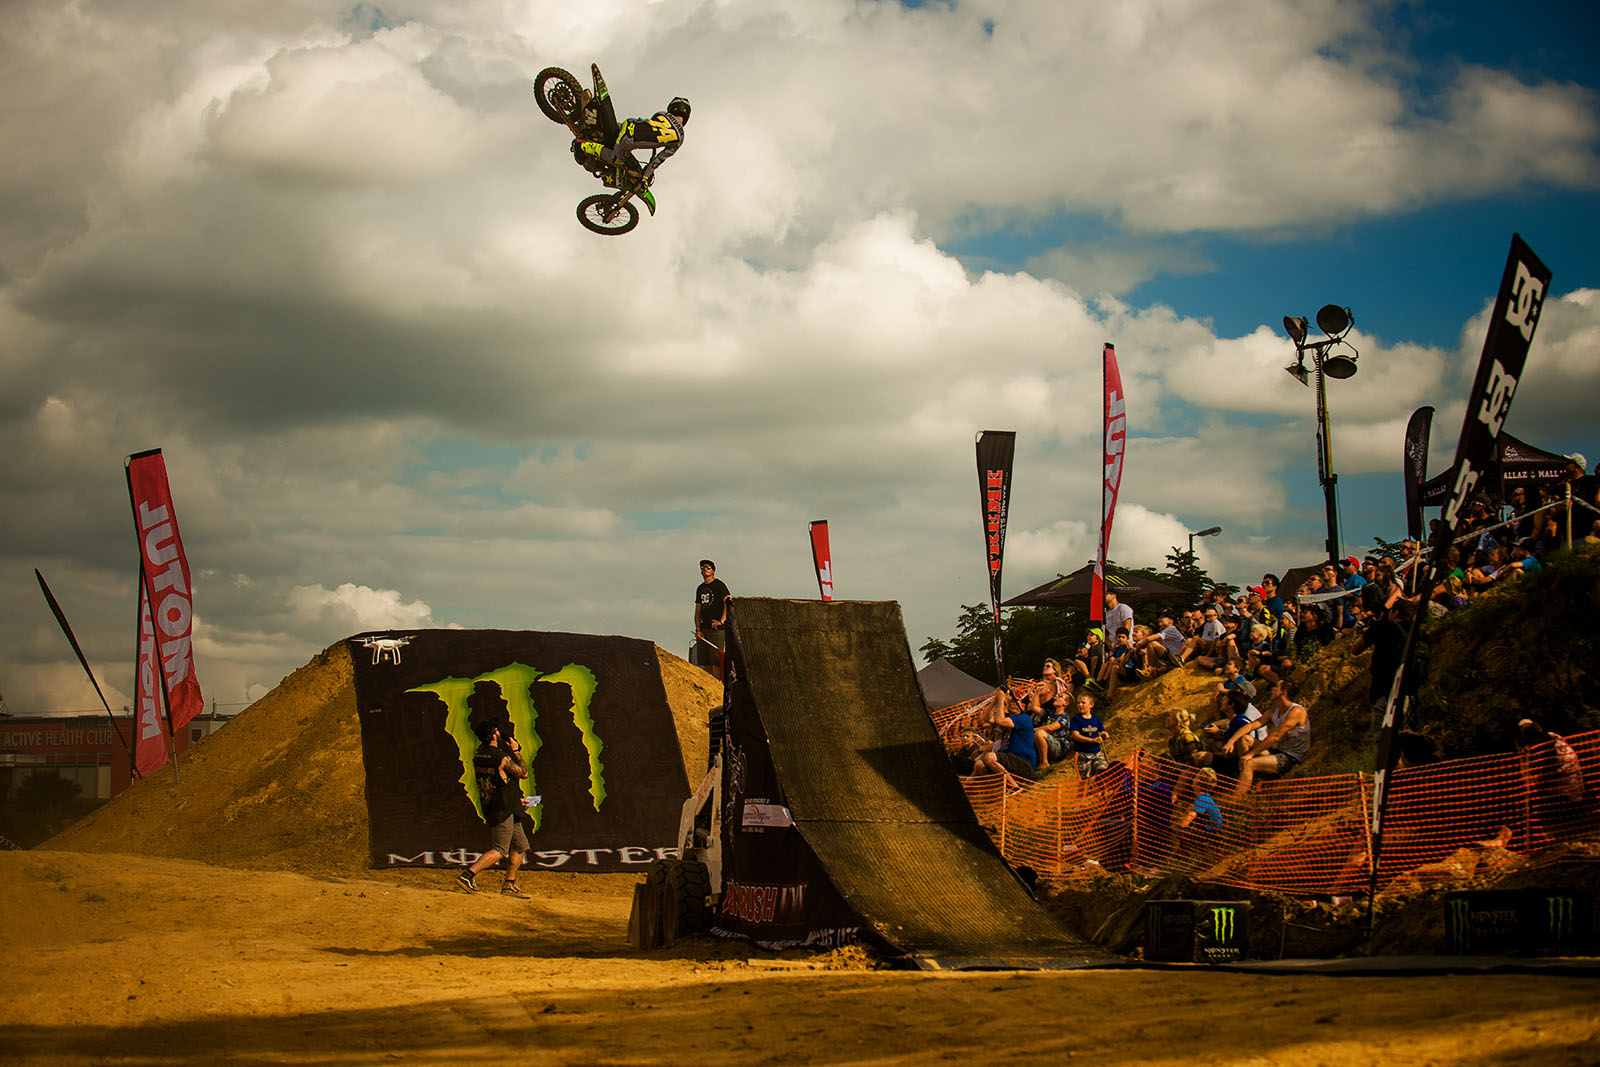 Danny Lailvaux with a motocross style whip at King of the Whip